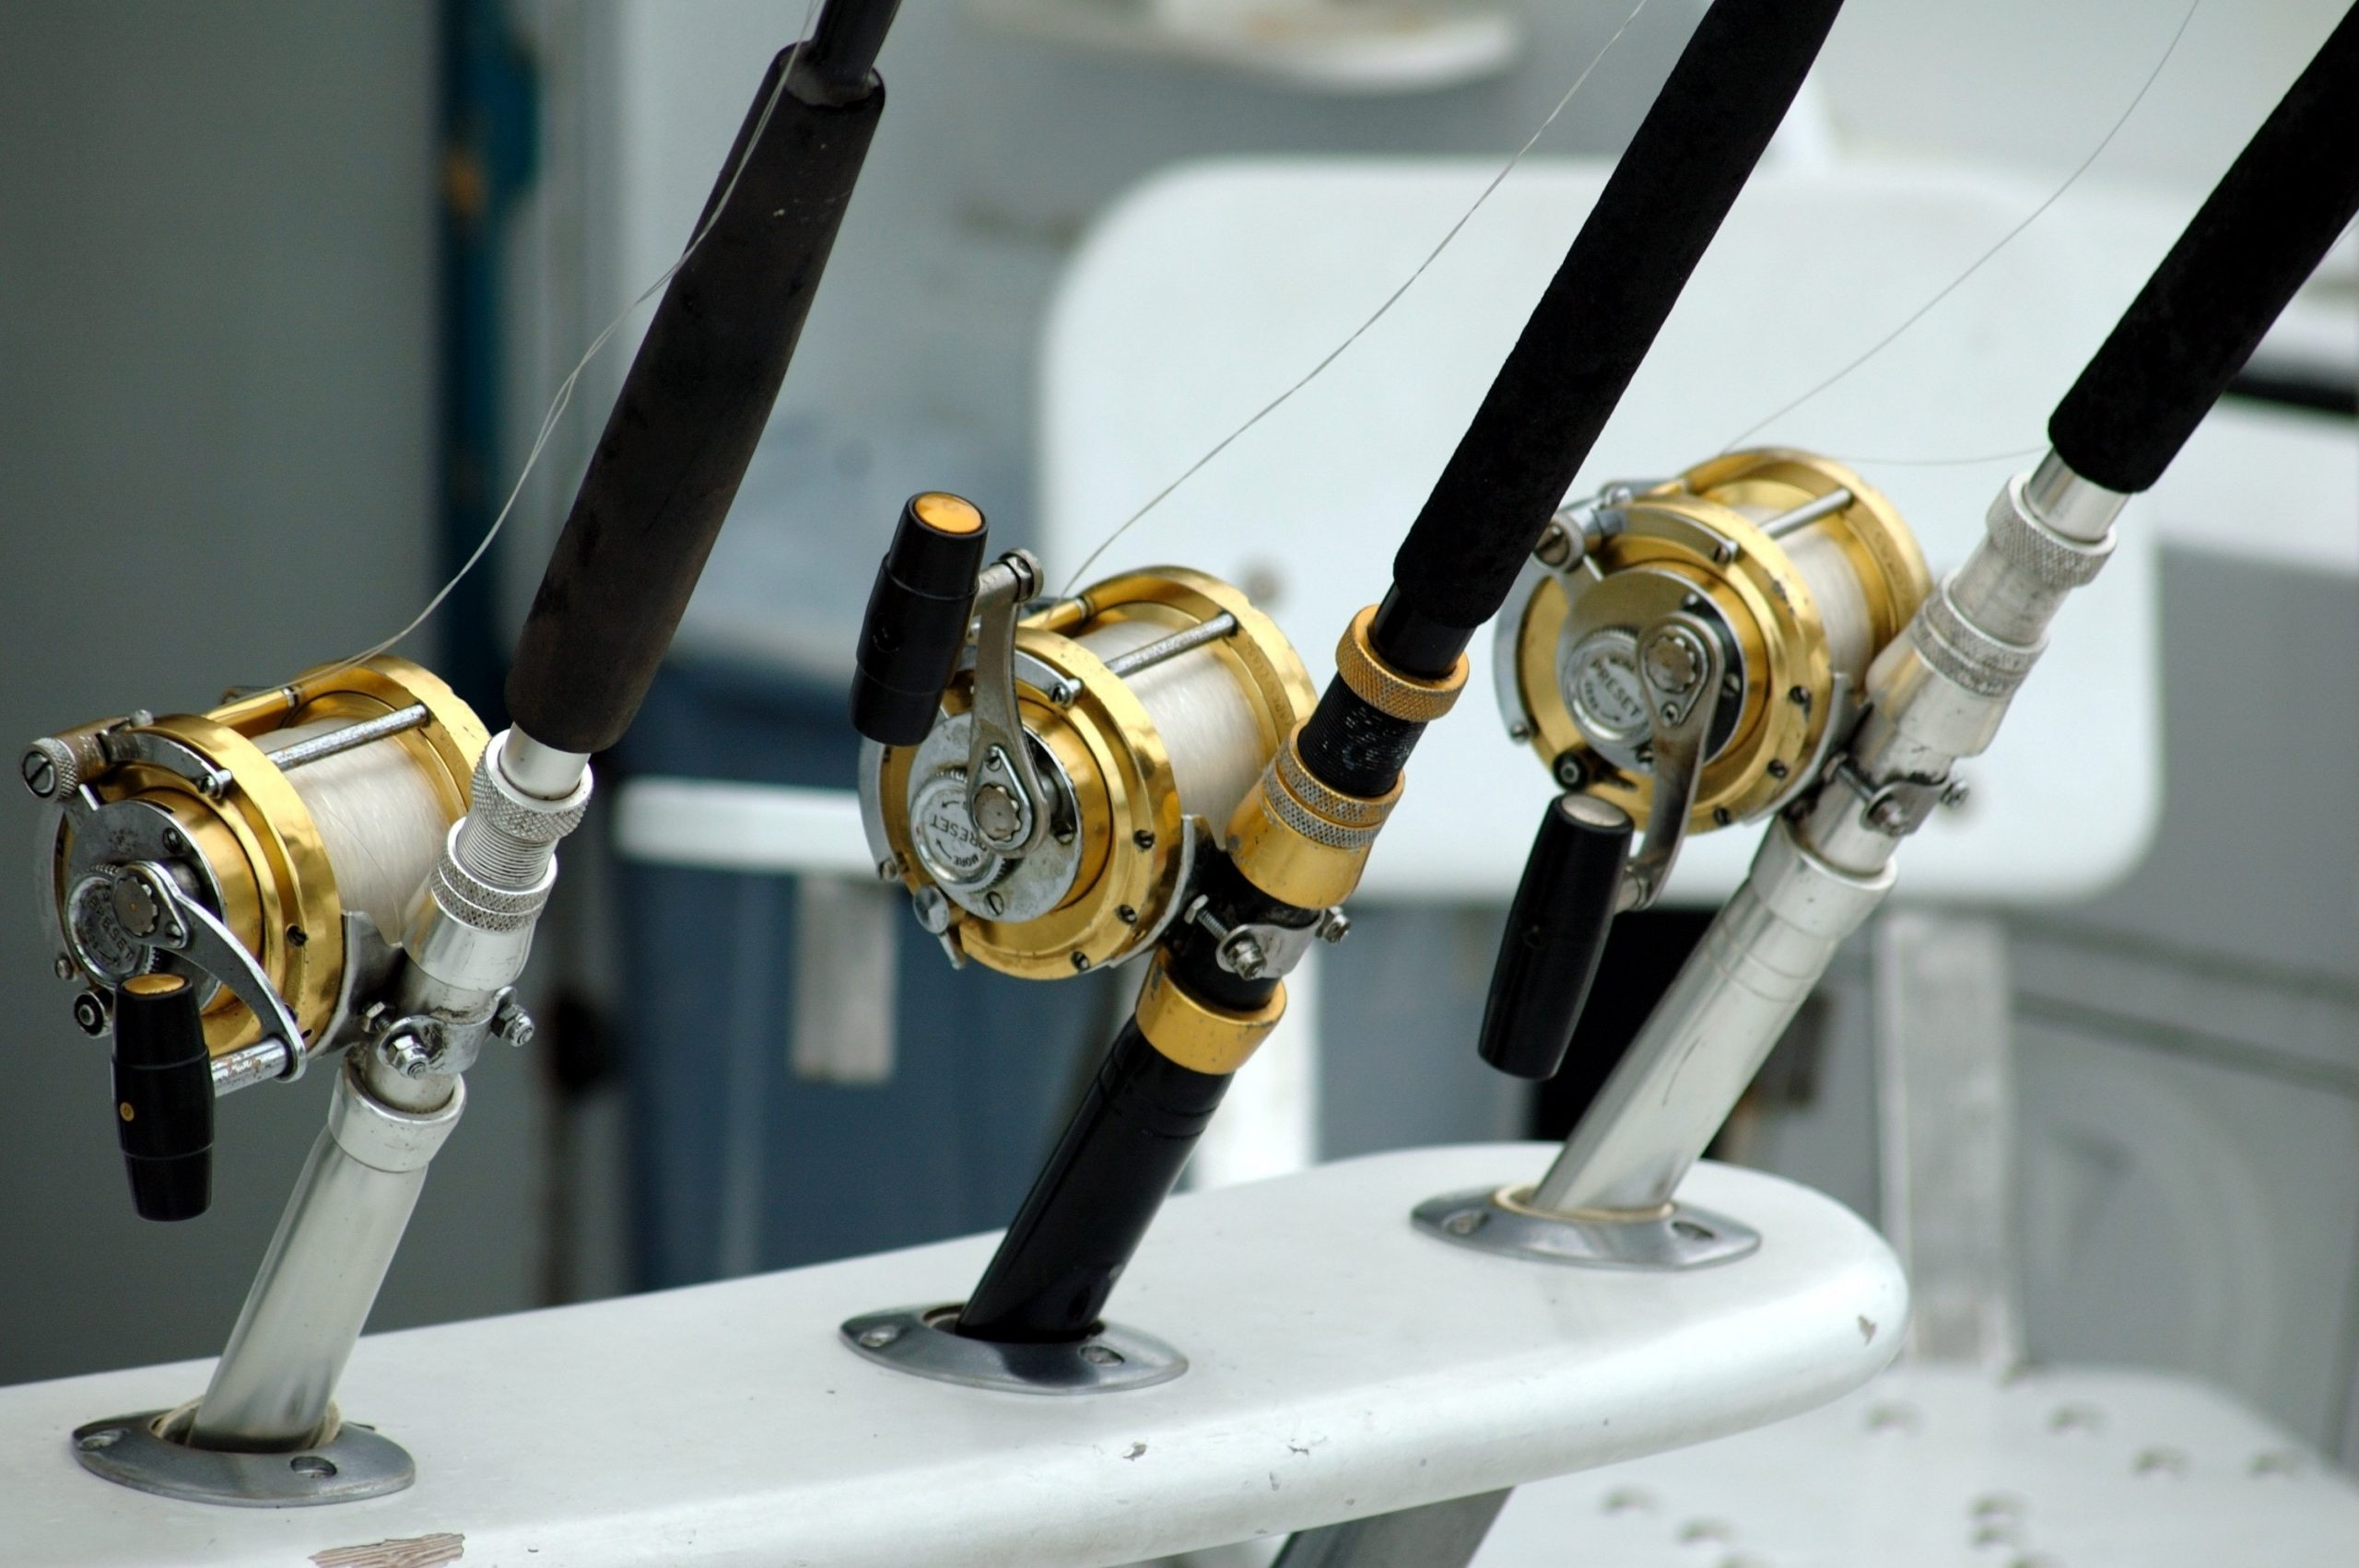 3 fishing rods all lined up